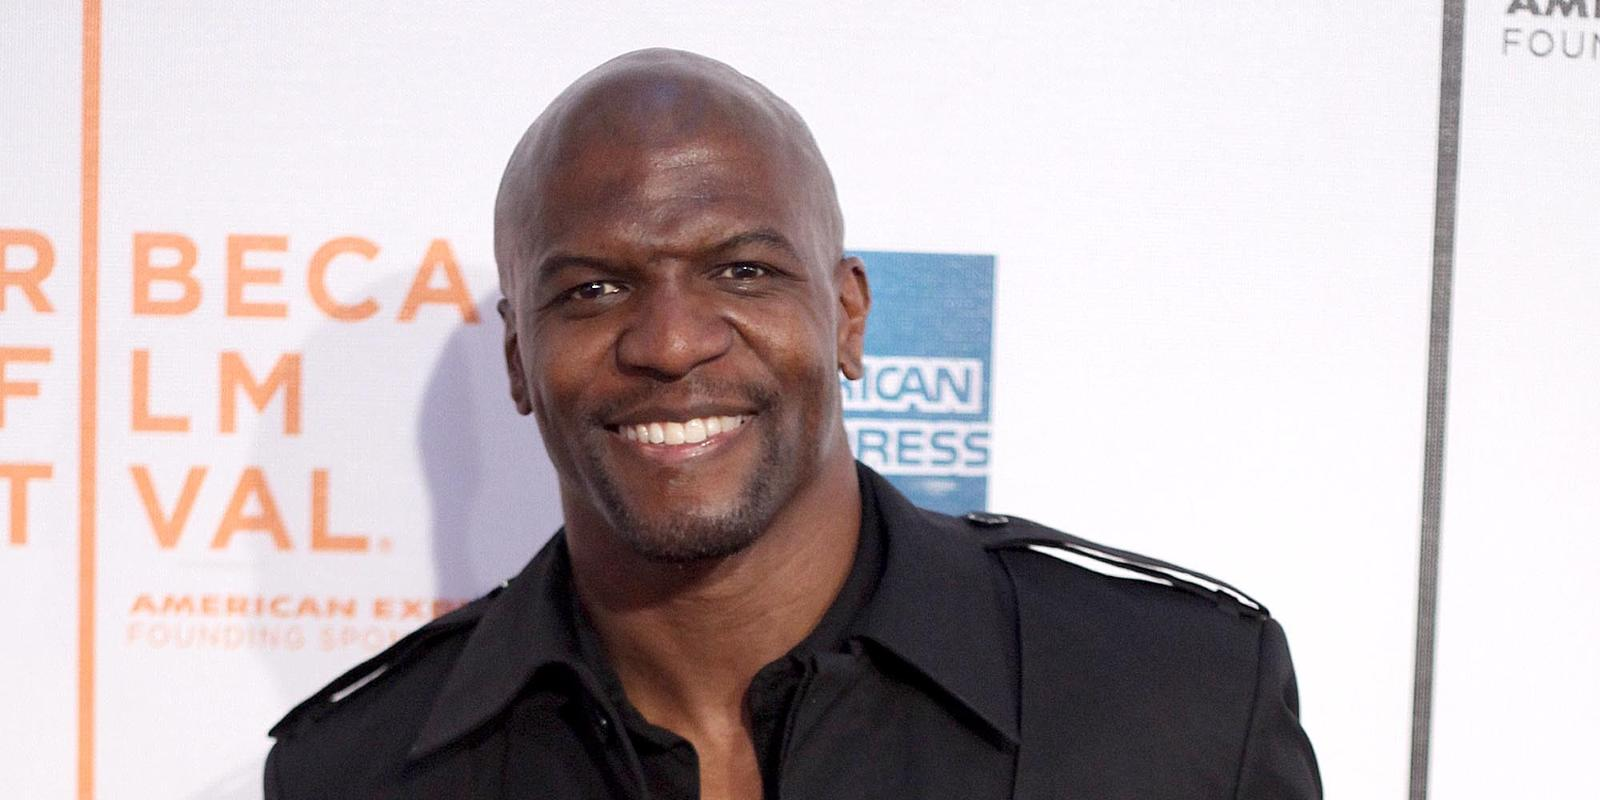 terry crews saves christmasterry crews doomfist, terry crews twitter, terry crews twitch, terry crews power, terry crews height, terry crews sport dance, terry crews wife, terry crews nfl, terry crews кинопоиск, terry crews saves christmas, terry crews facebook, terry crews youtube, terry crews family, terry crews pc, terry crews robot, terry crews фильмография, terry crews old spice, terry crews paintings, terry crews stream, terry crews euro training